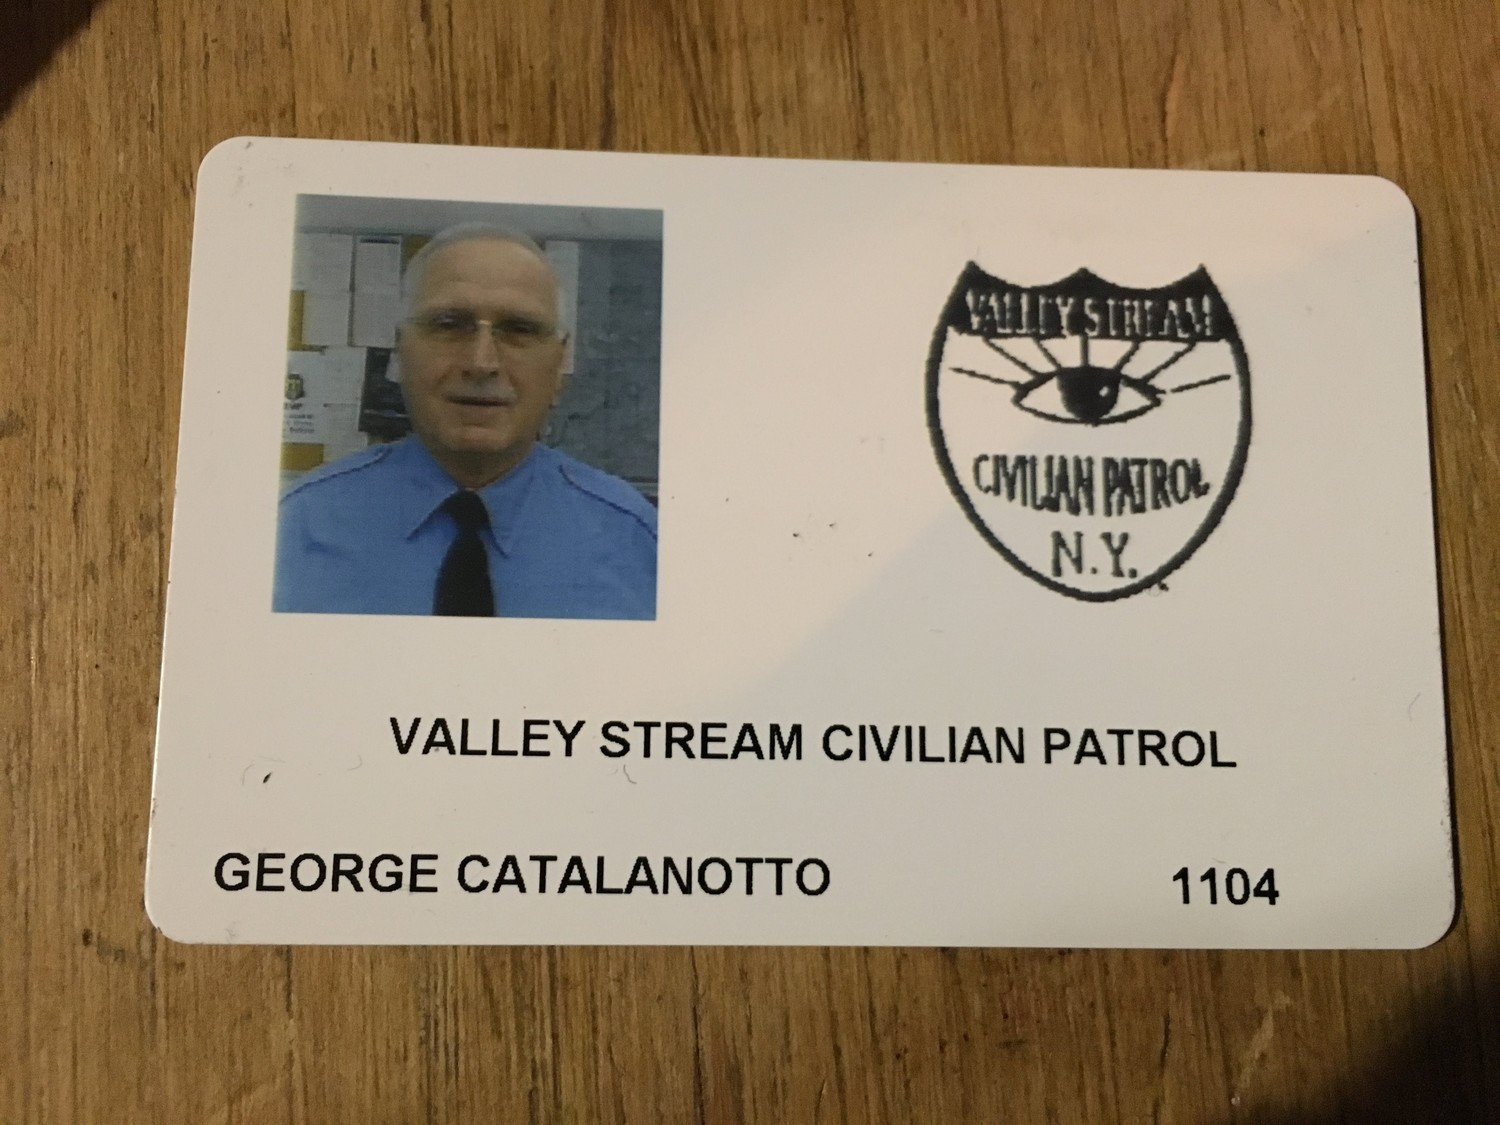 Members of the Civilian Patrol get ID cards like this one.